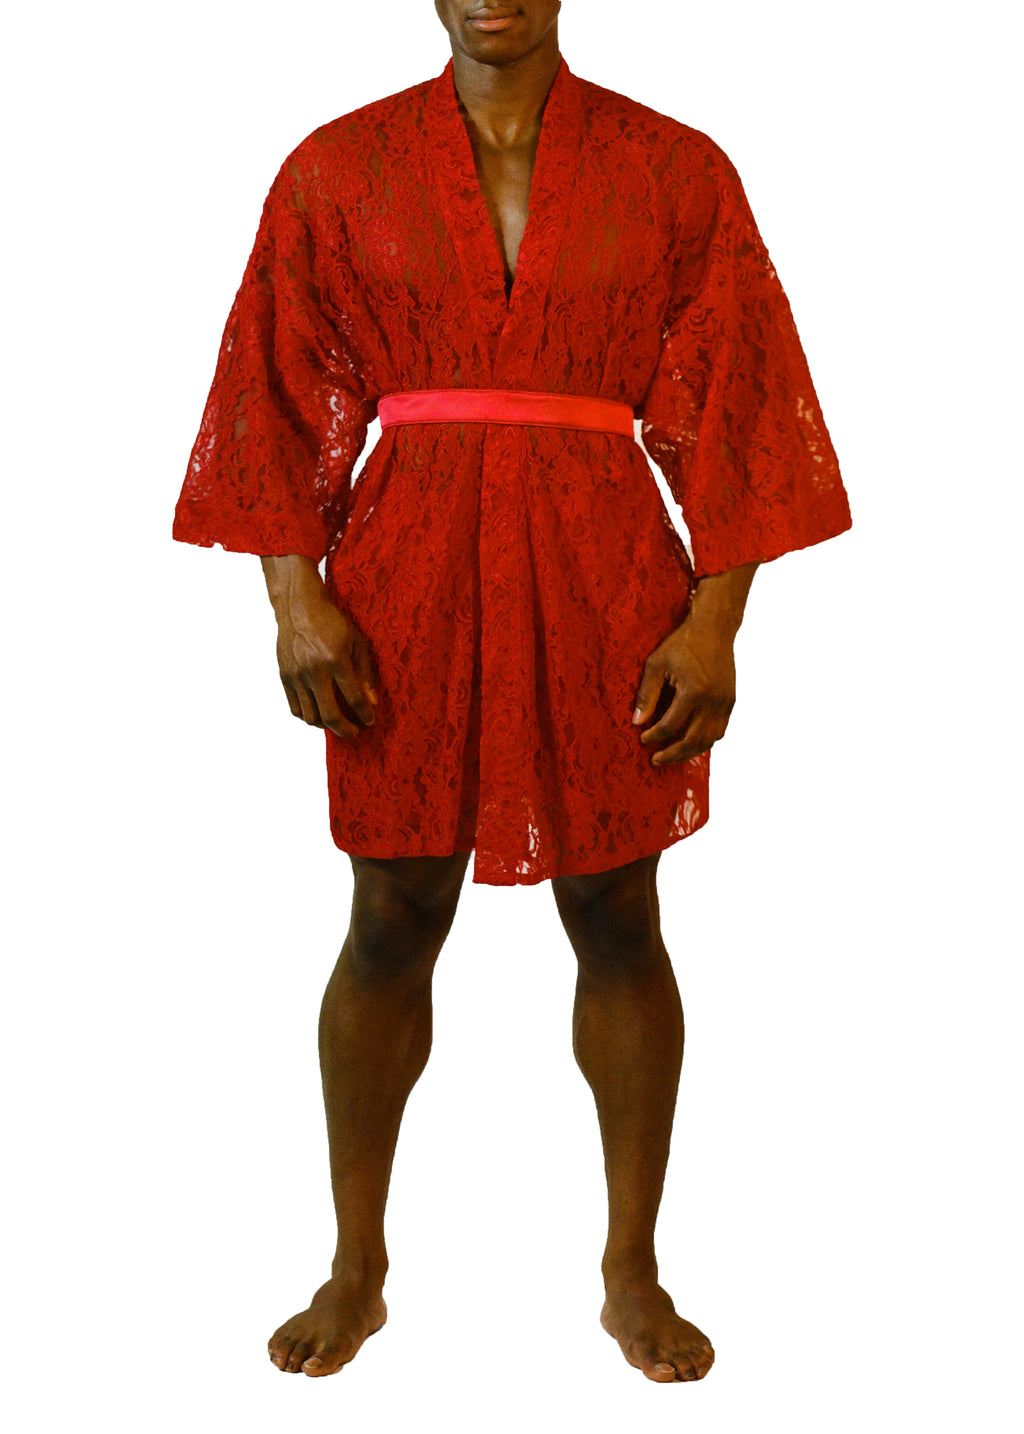 KIMONO ROBE in RED LACE - MENAGERIÉ Intimates